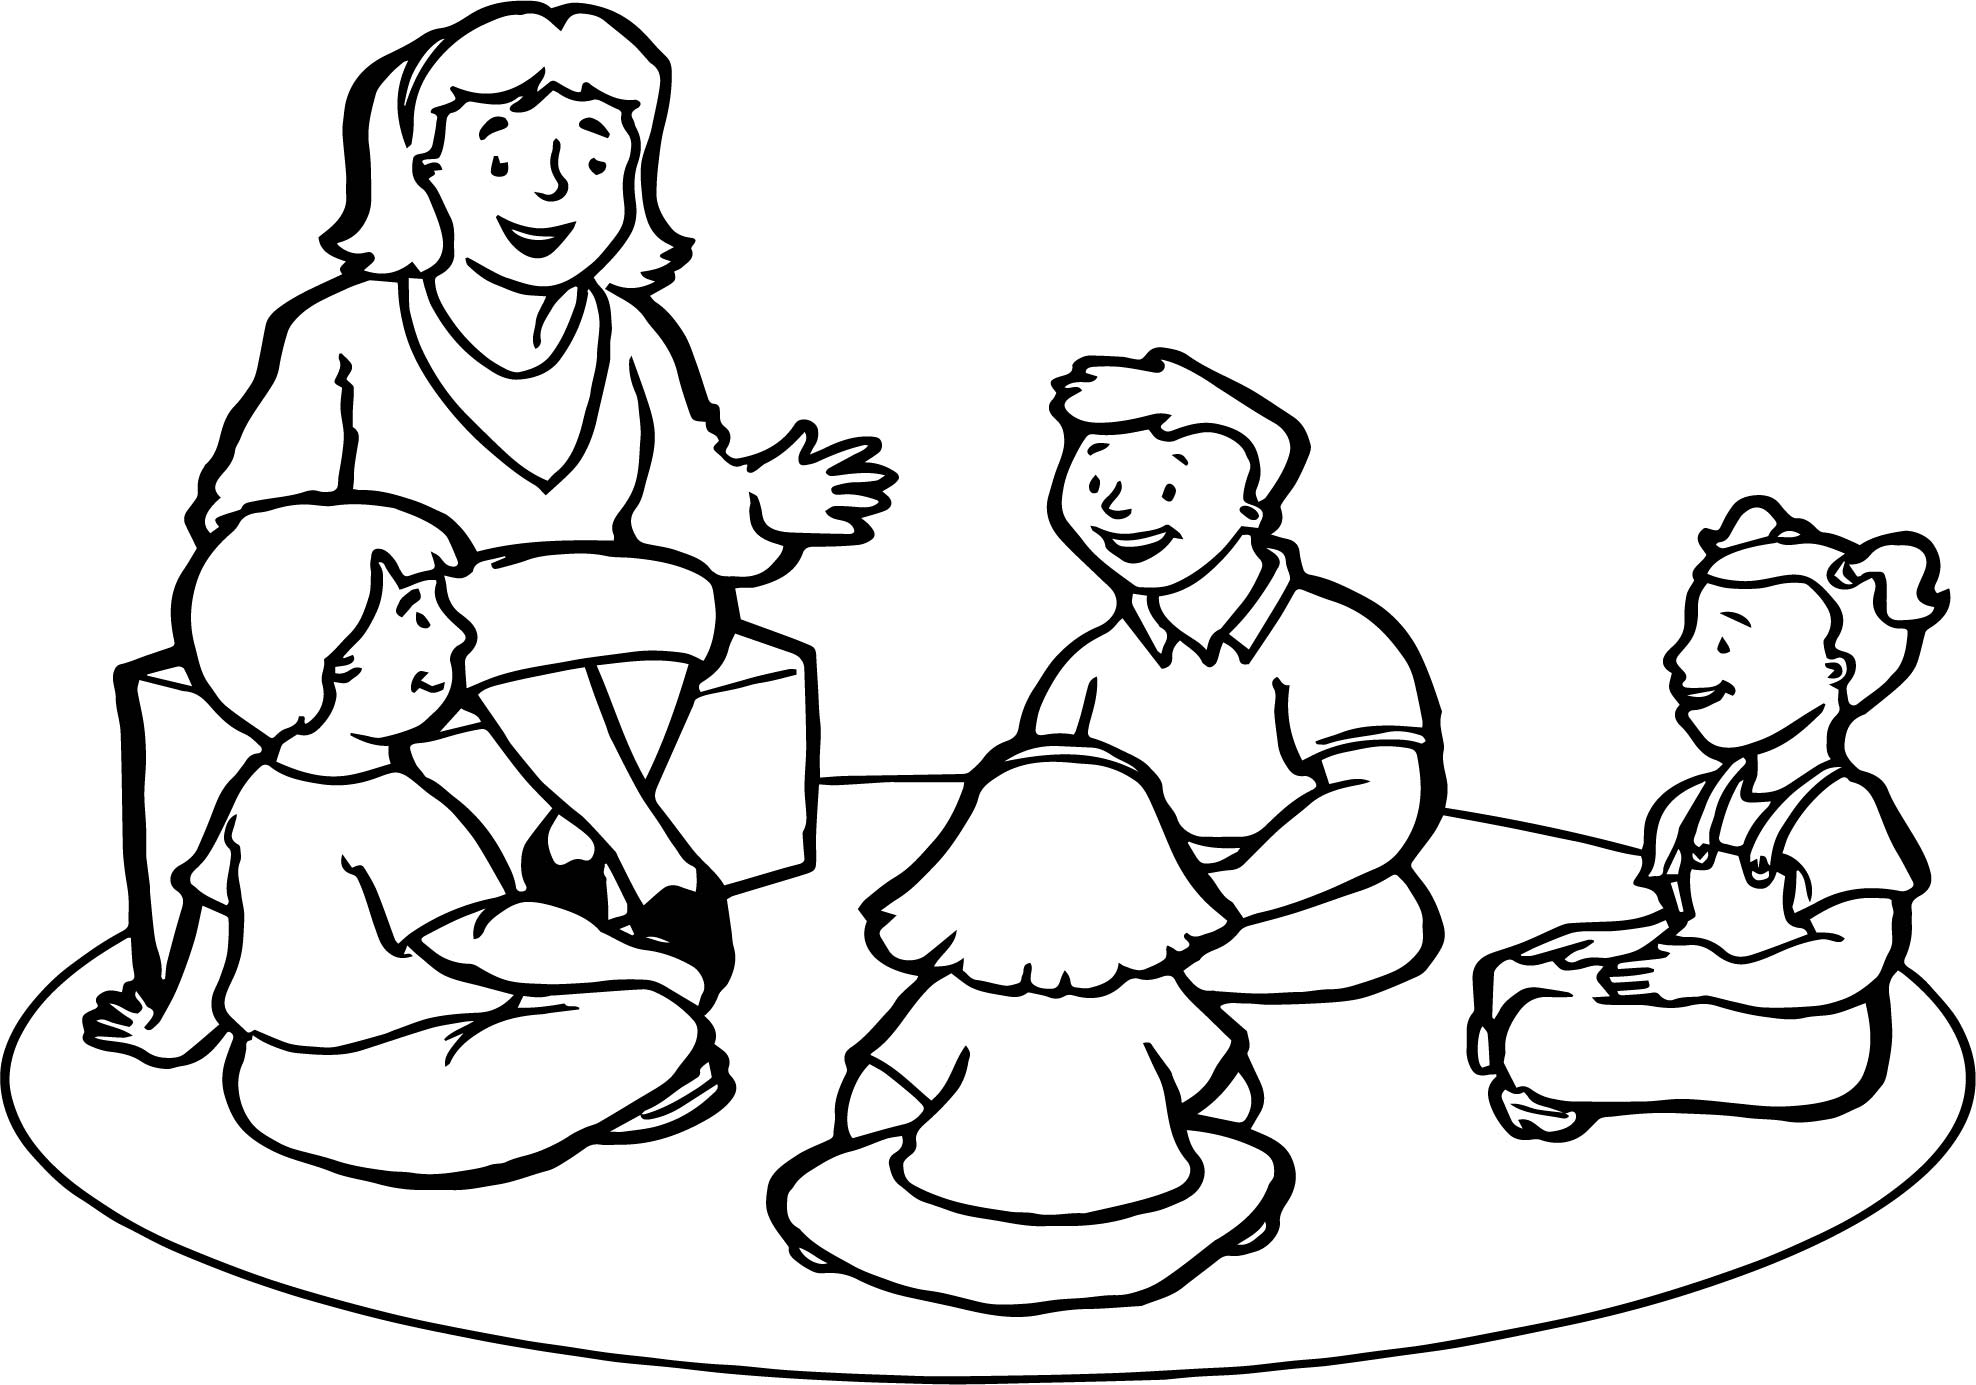 English Teacher Childrens Coloring Page